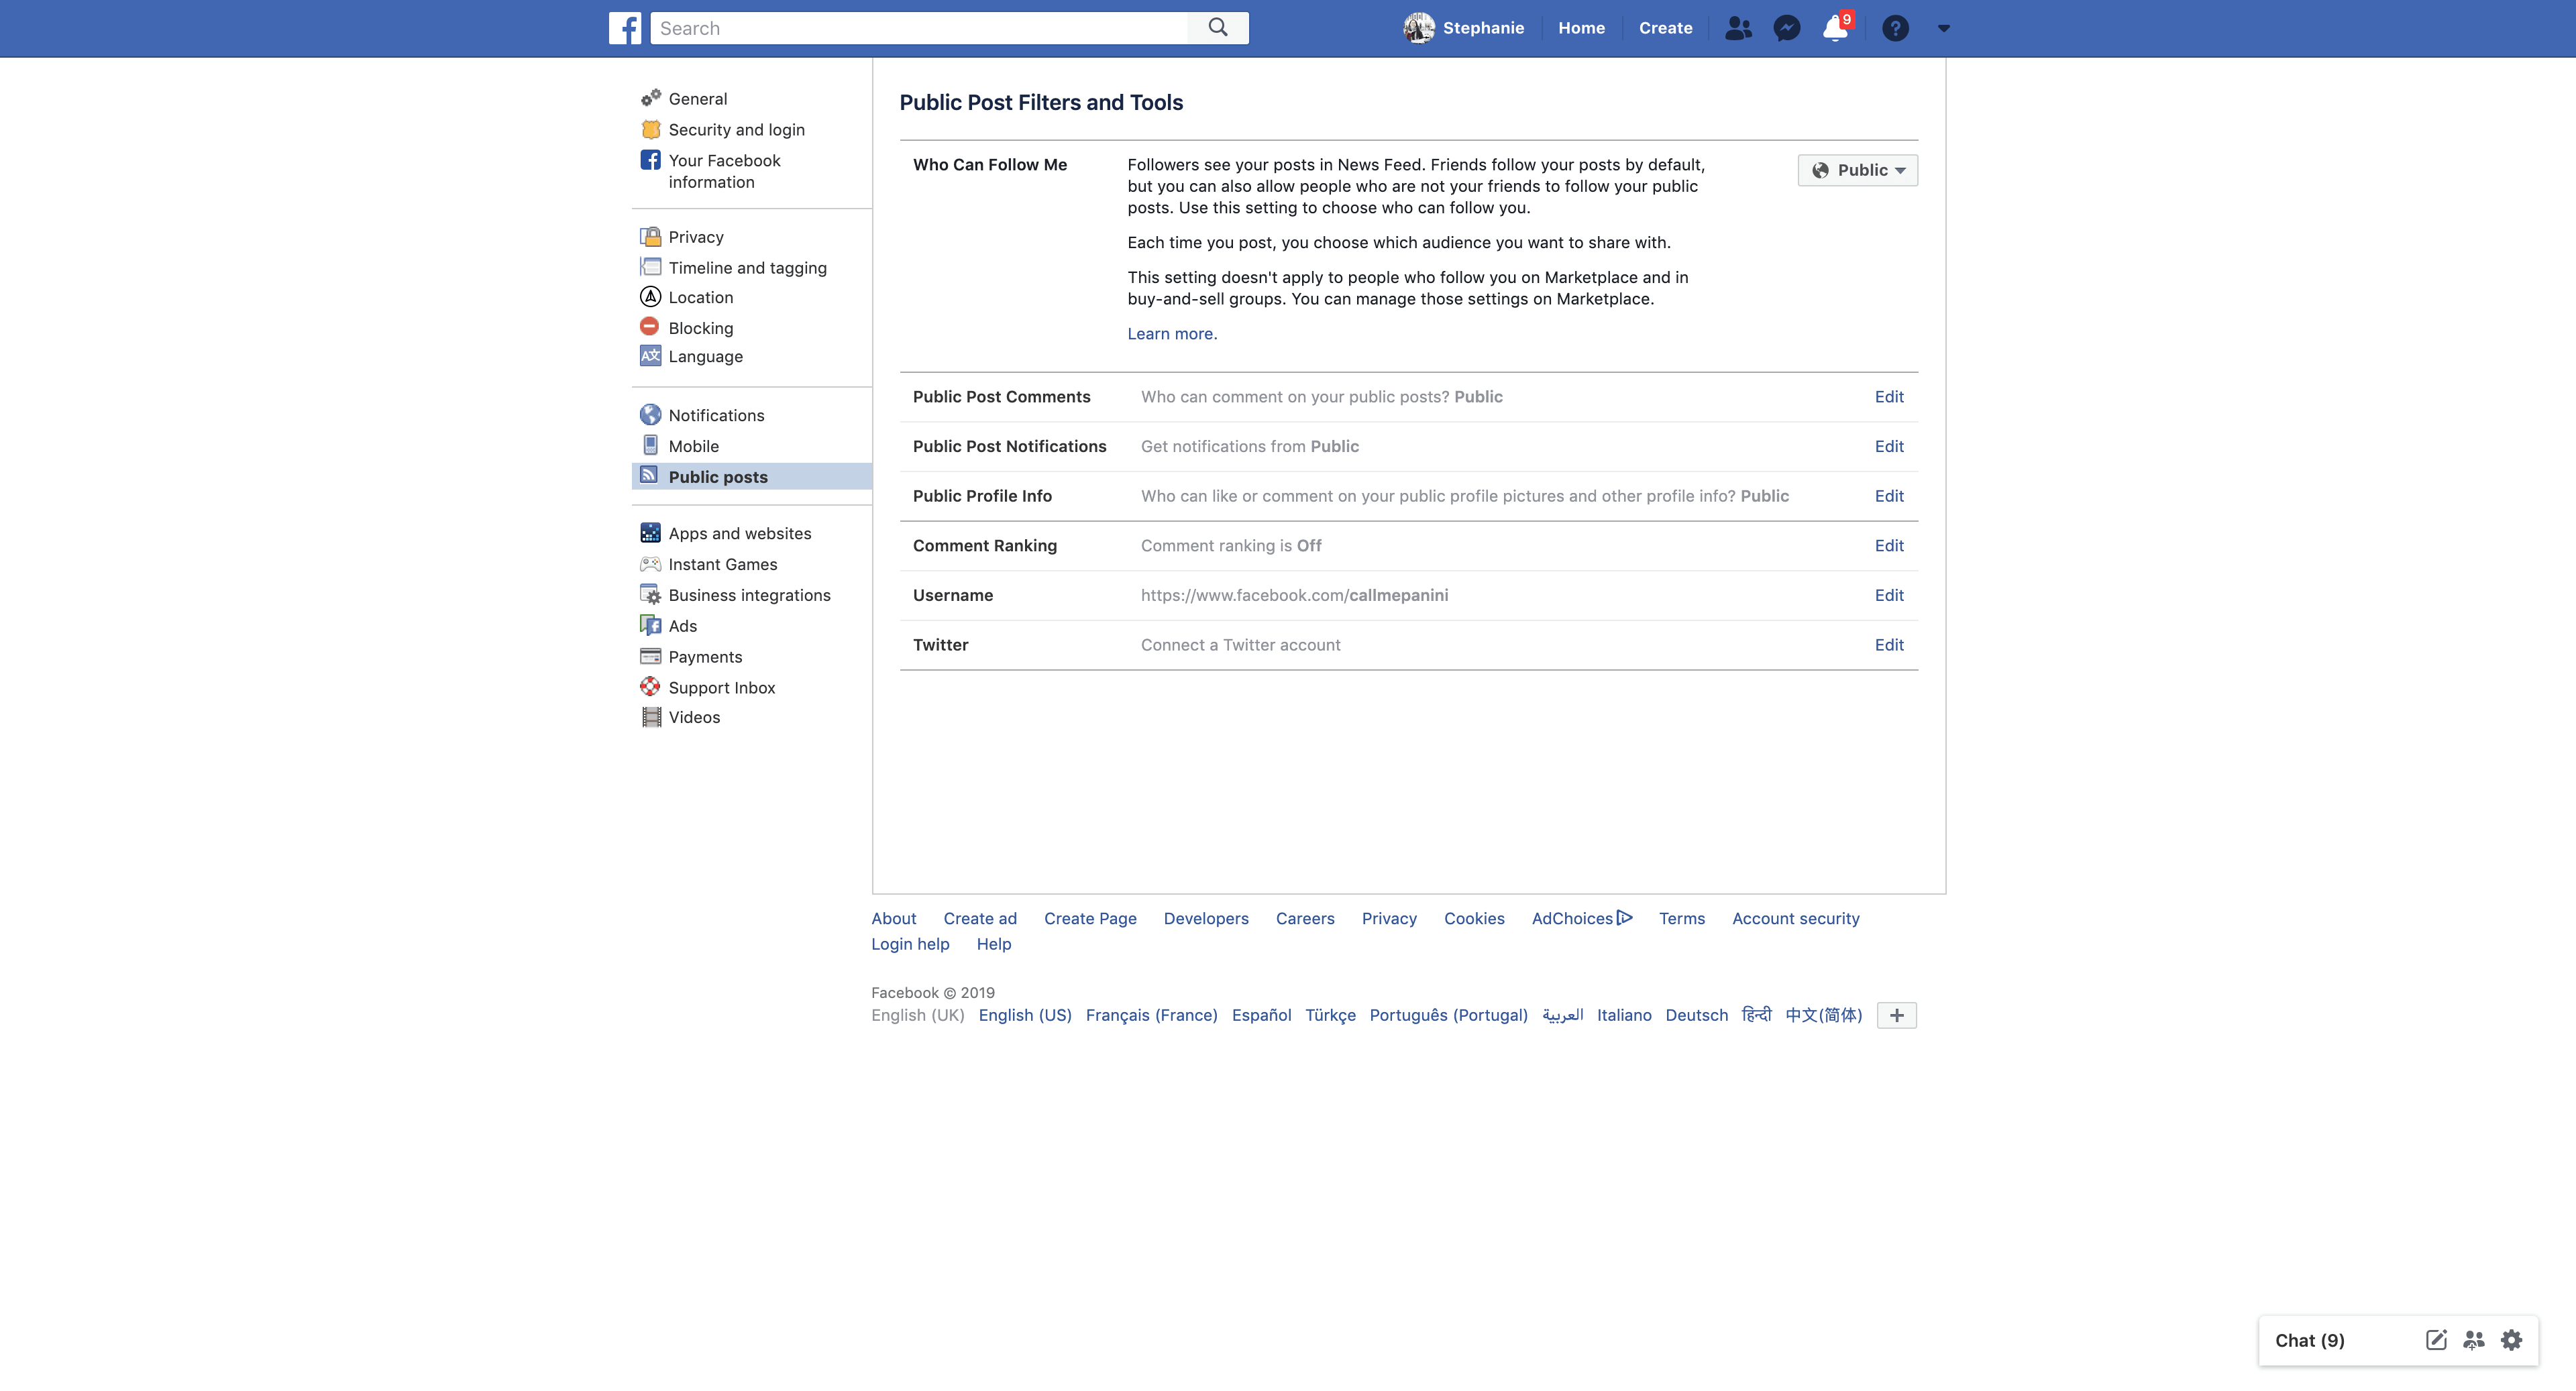 Public Post Settings By Facebook